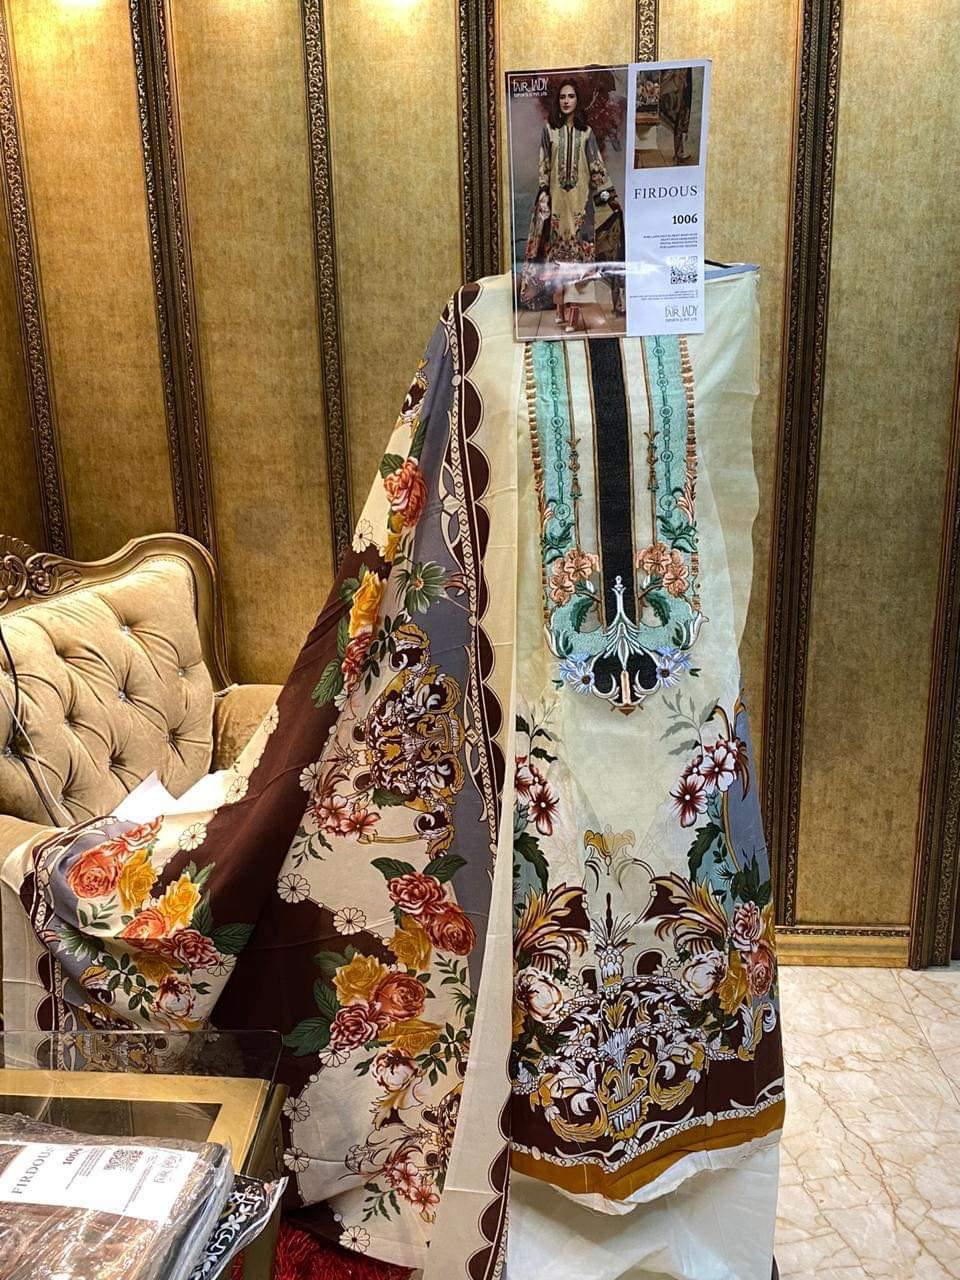 Fair Lady Firdous Designer Lawn Cotton Digital Print Embroidery Work Suits In Singles